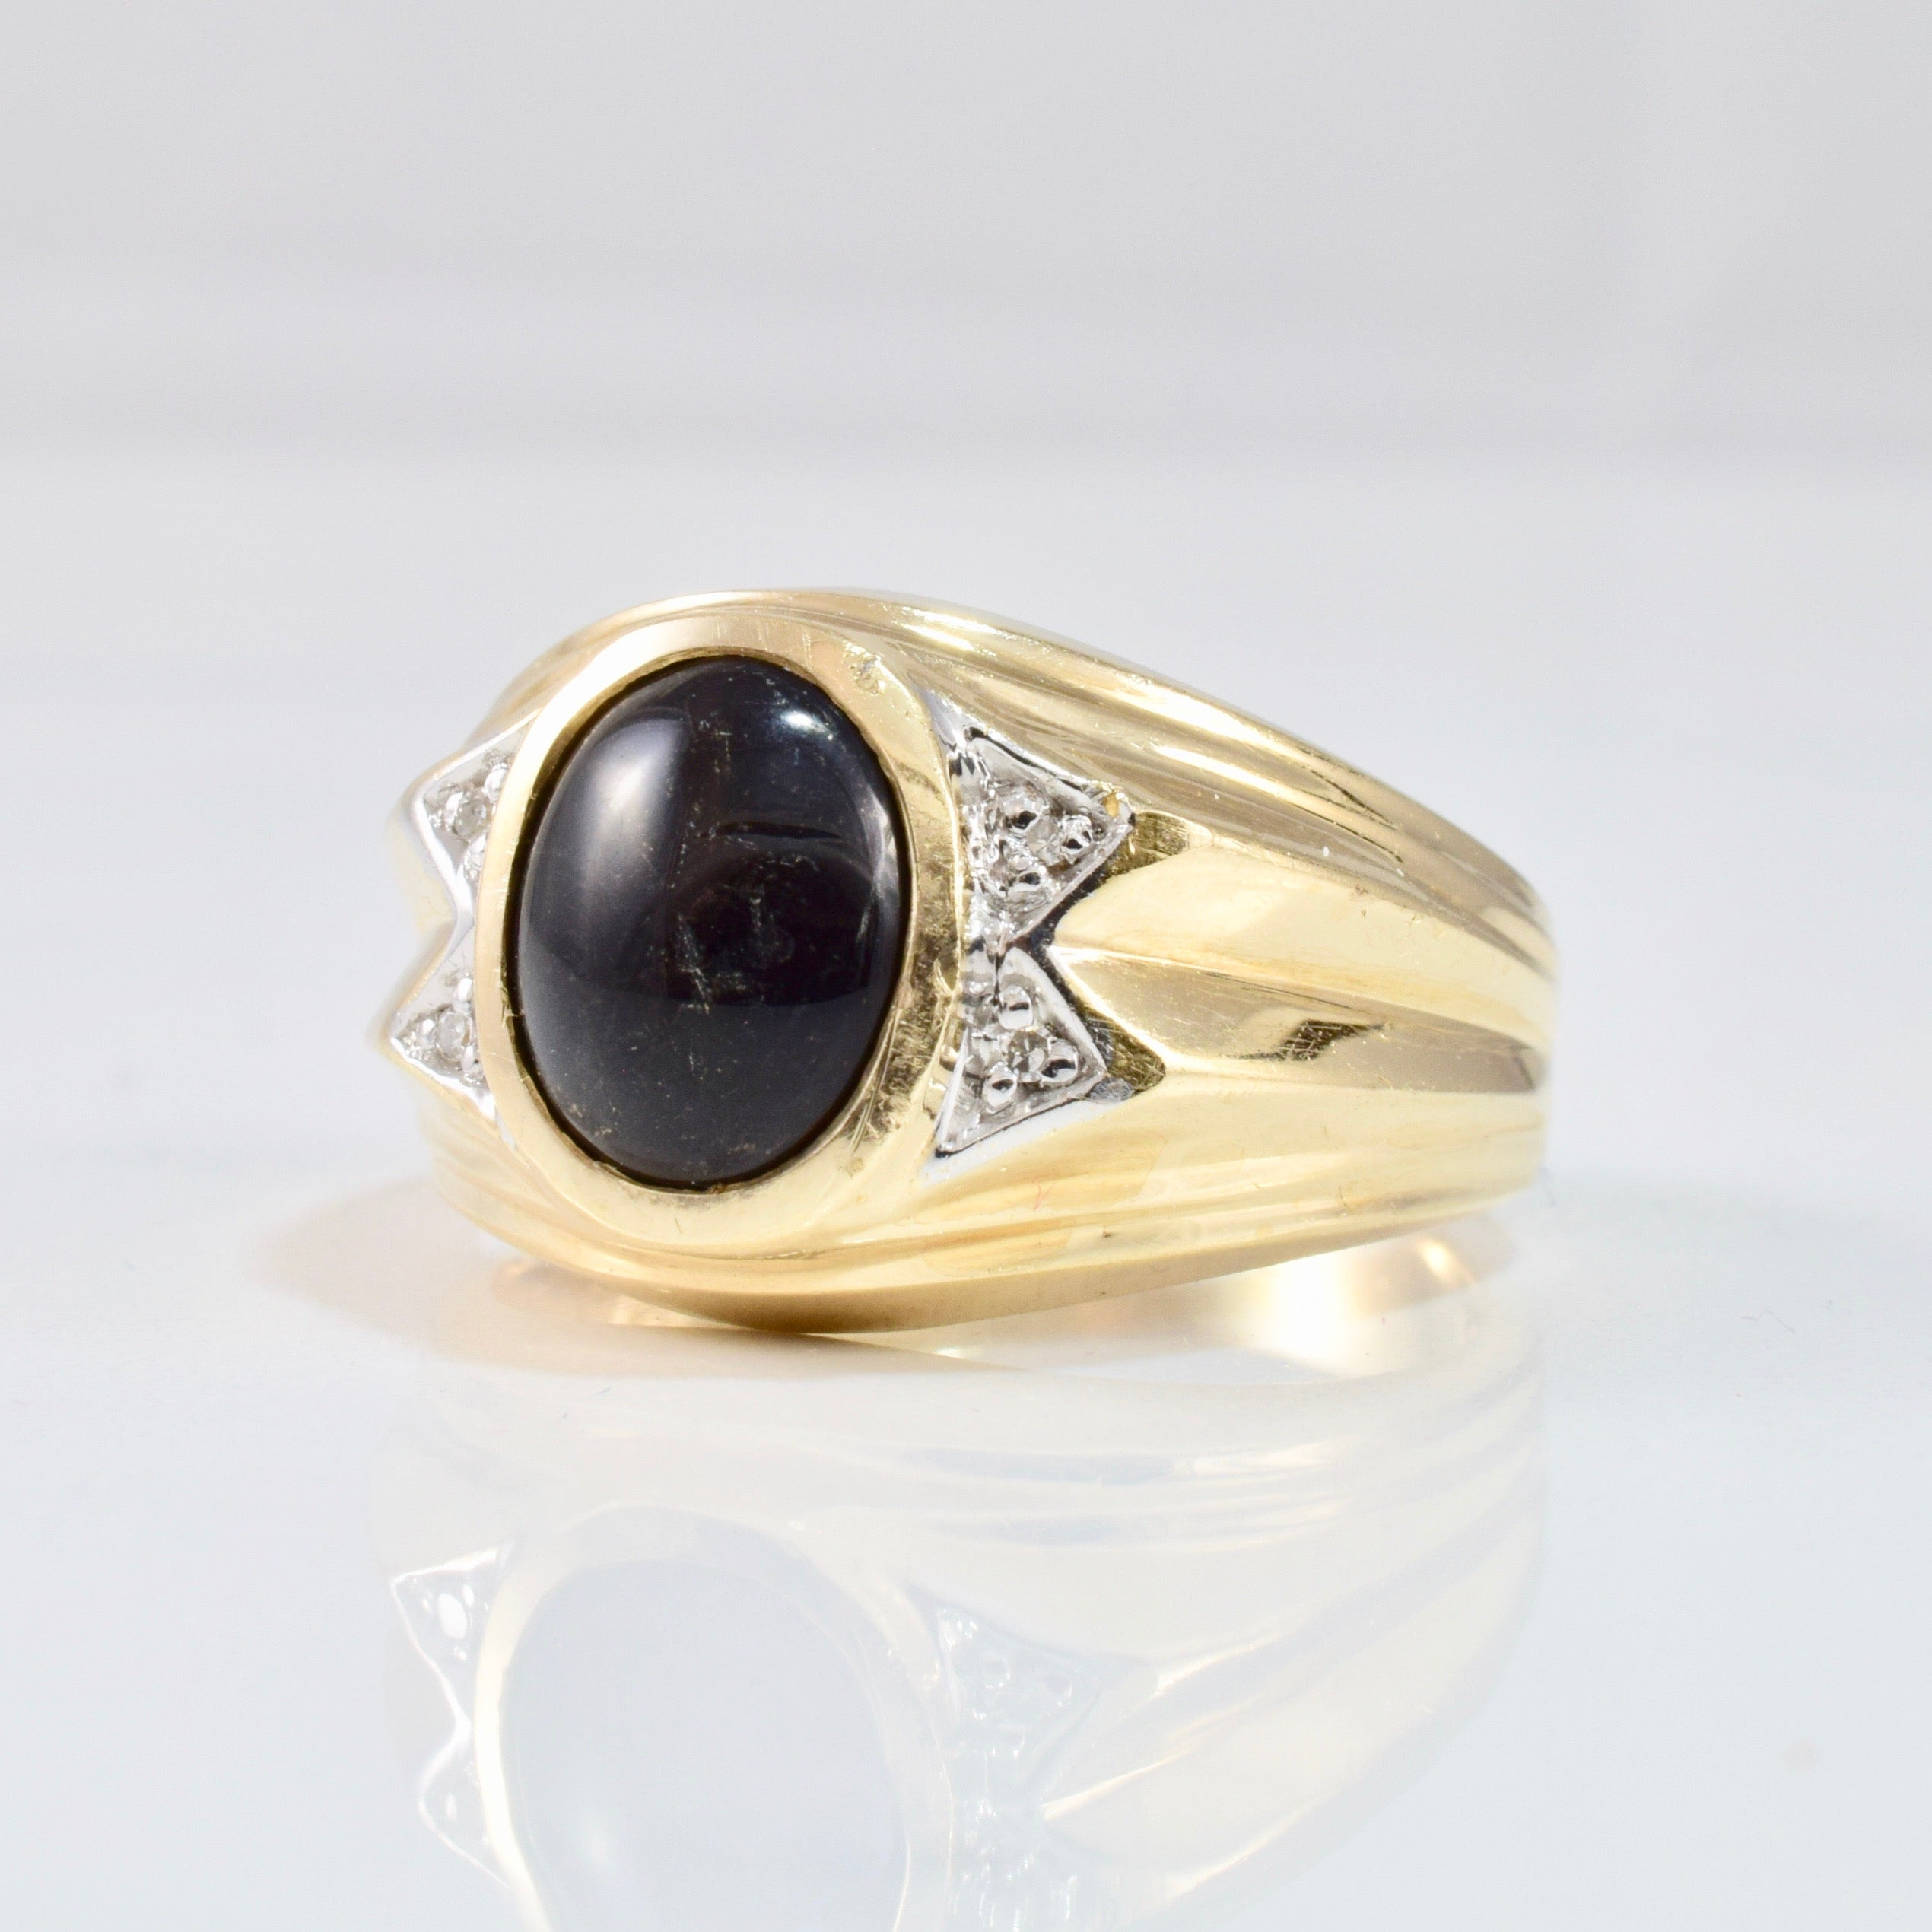 Bezel Set Onyx & Diamond Ring | 0.02 ctw SZ 9 |